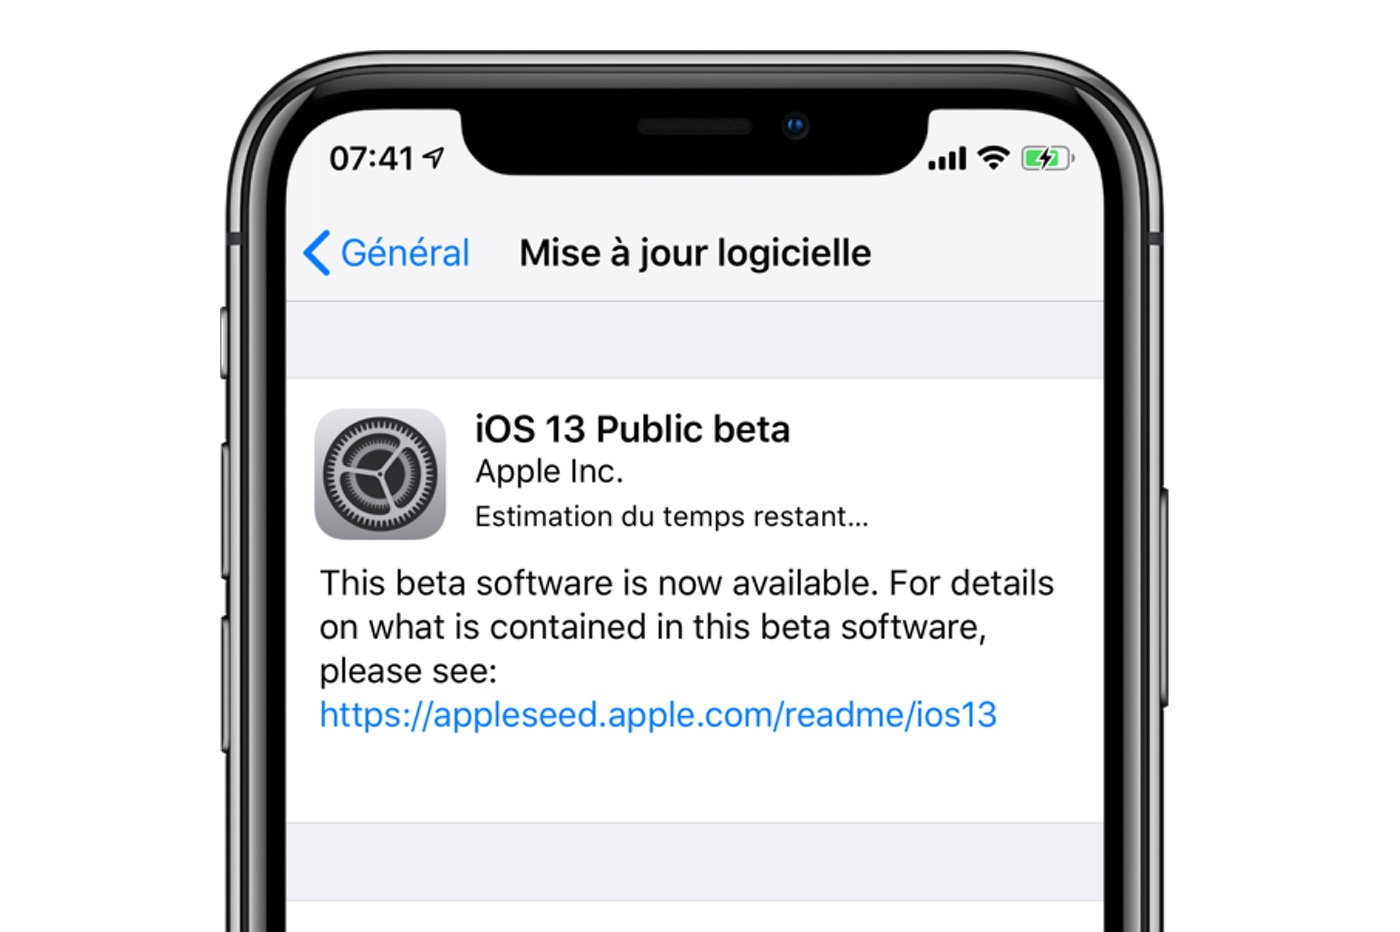 iOS 13 beta publique